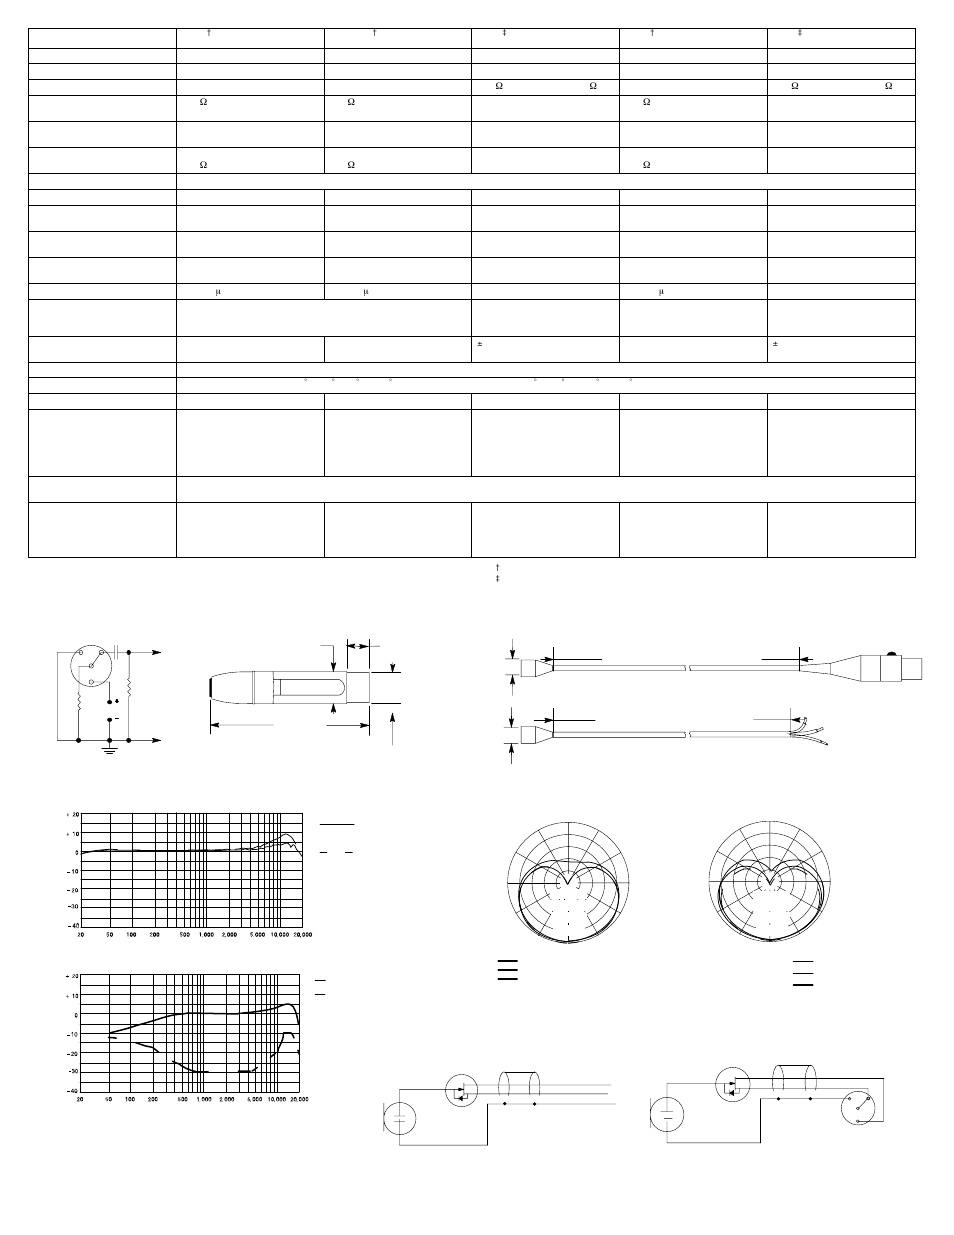 Shure Wl50 User Manual Page 2 Also For Wl51 Microphone 4 Pin Wiring Diagram